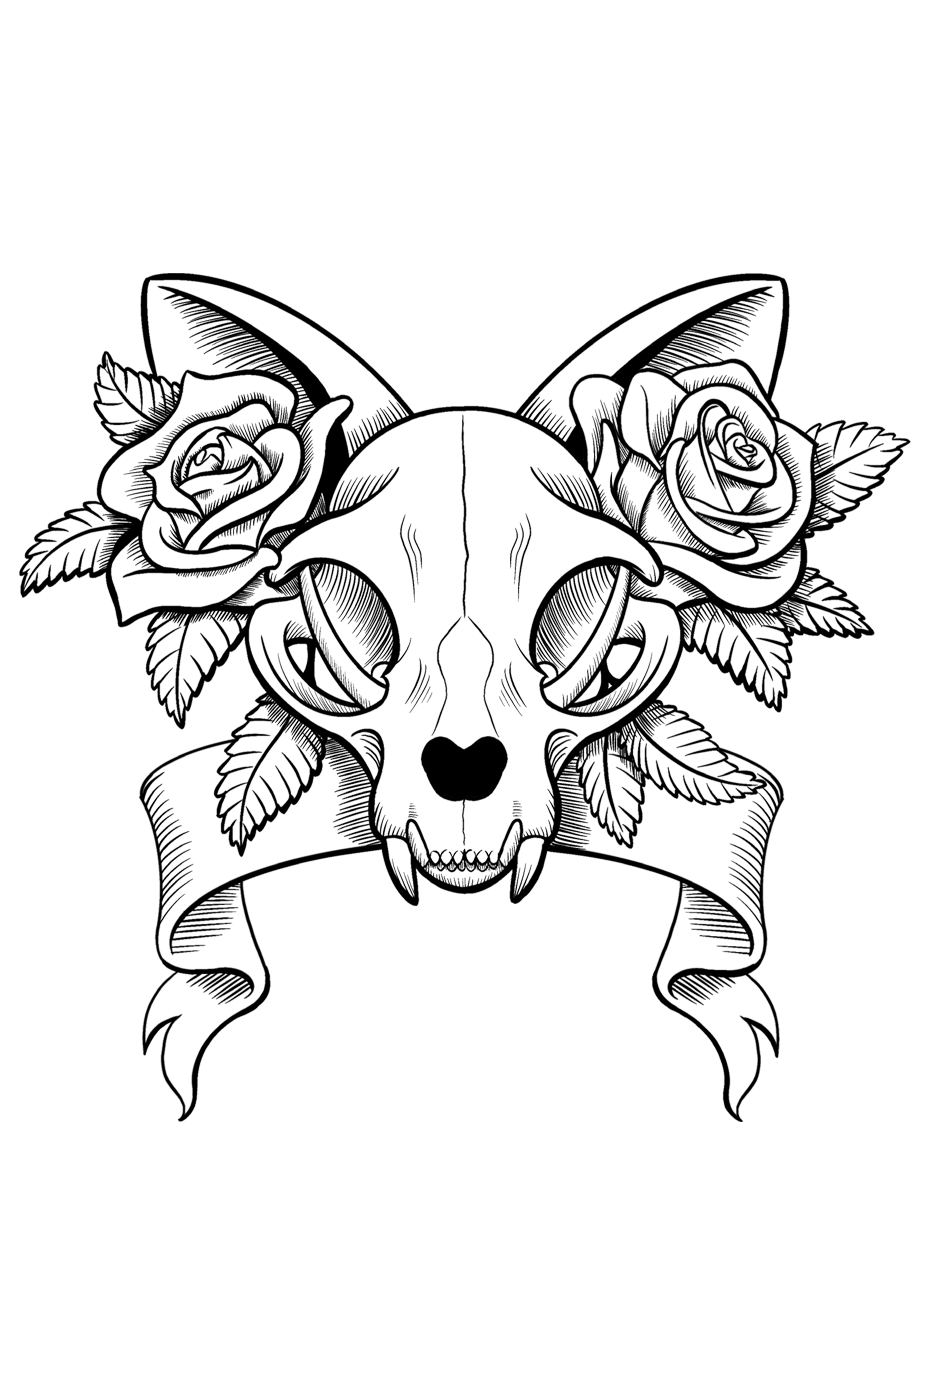 Kitty skull w/ roses by Muccikins